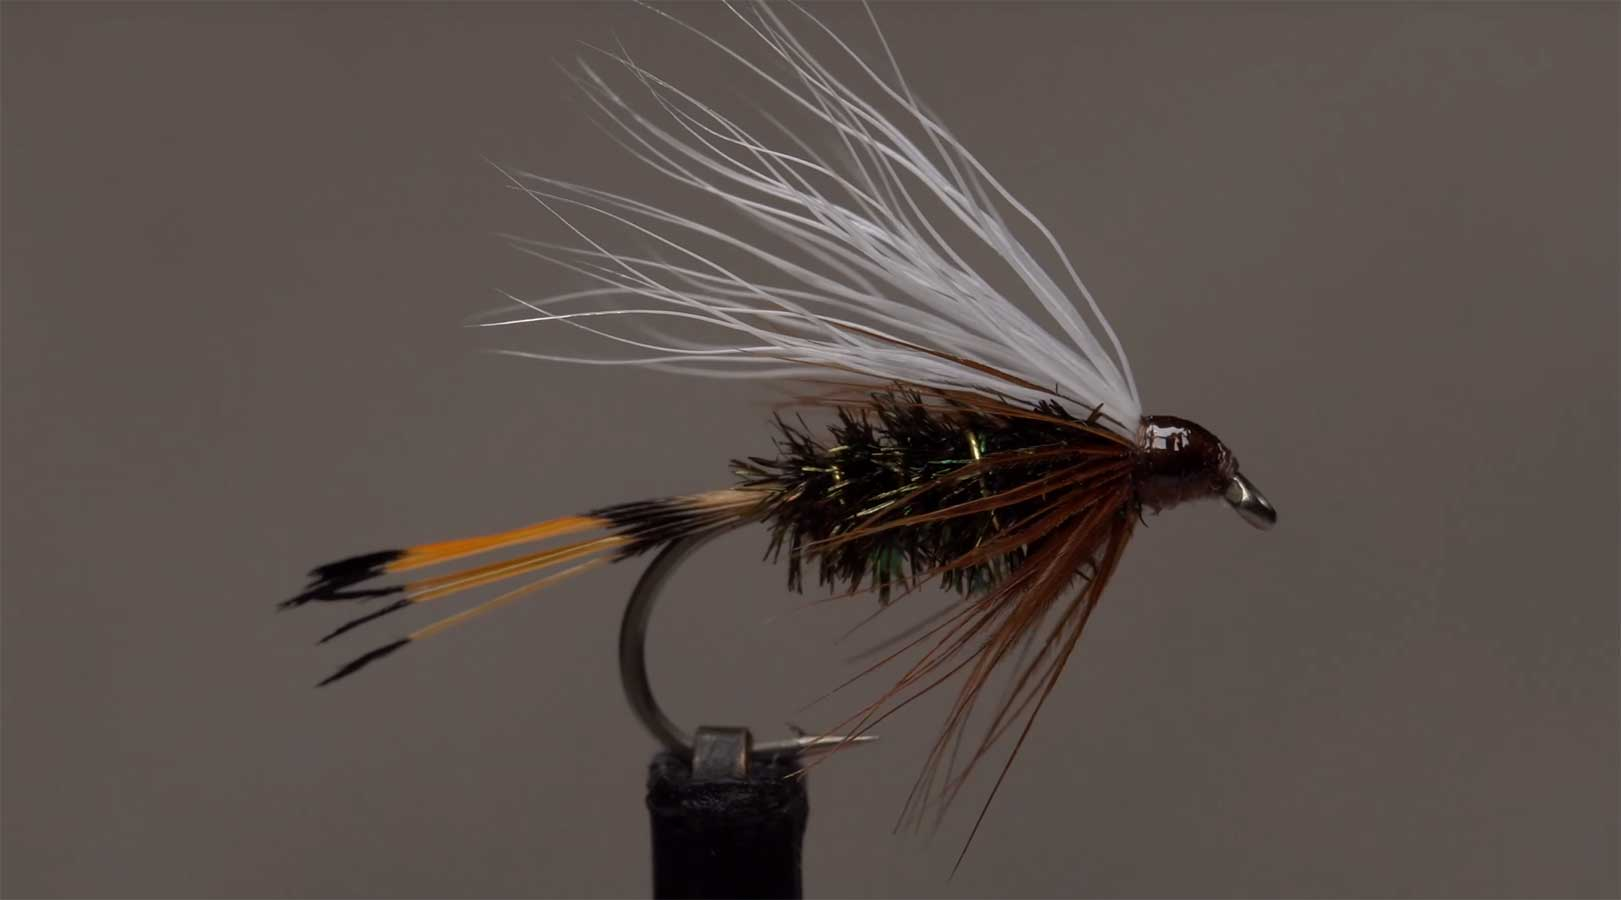 Fly Tying: How to Tie a Western Coachman